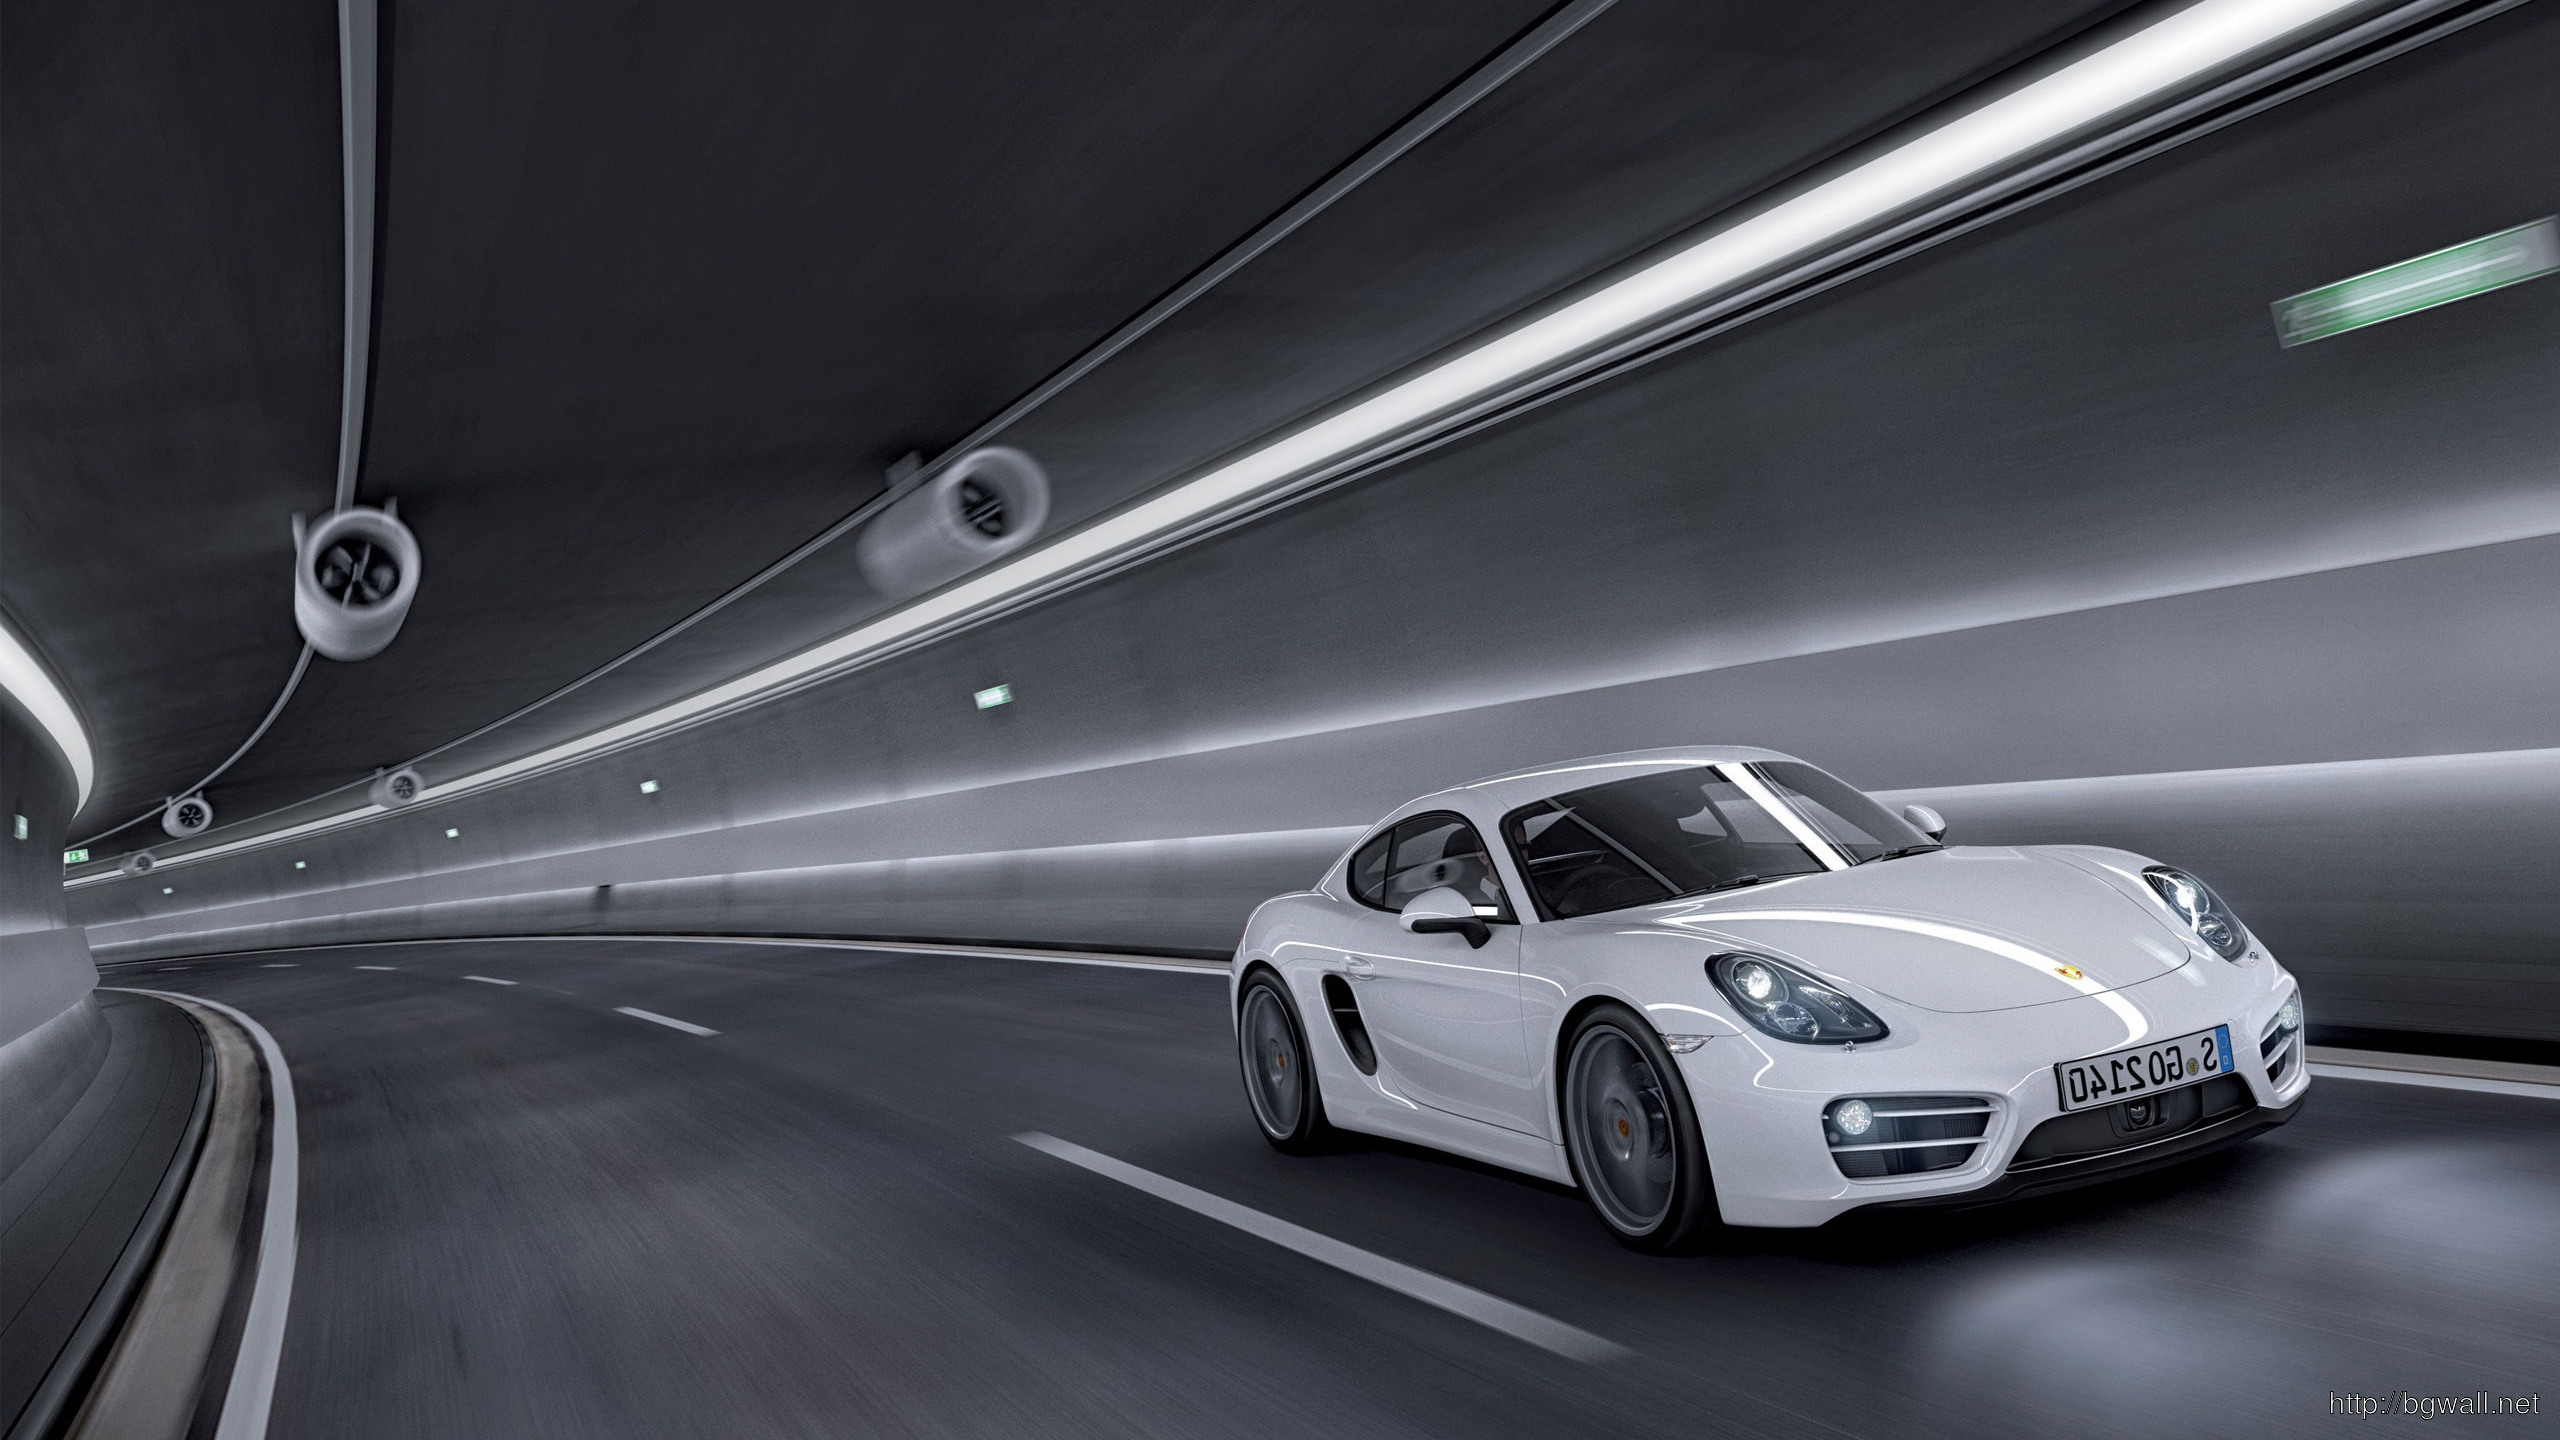 porsche cayman 2013 wallpaper in 2560×1440 resolution – background